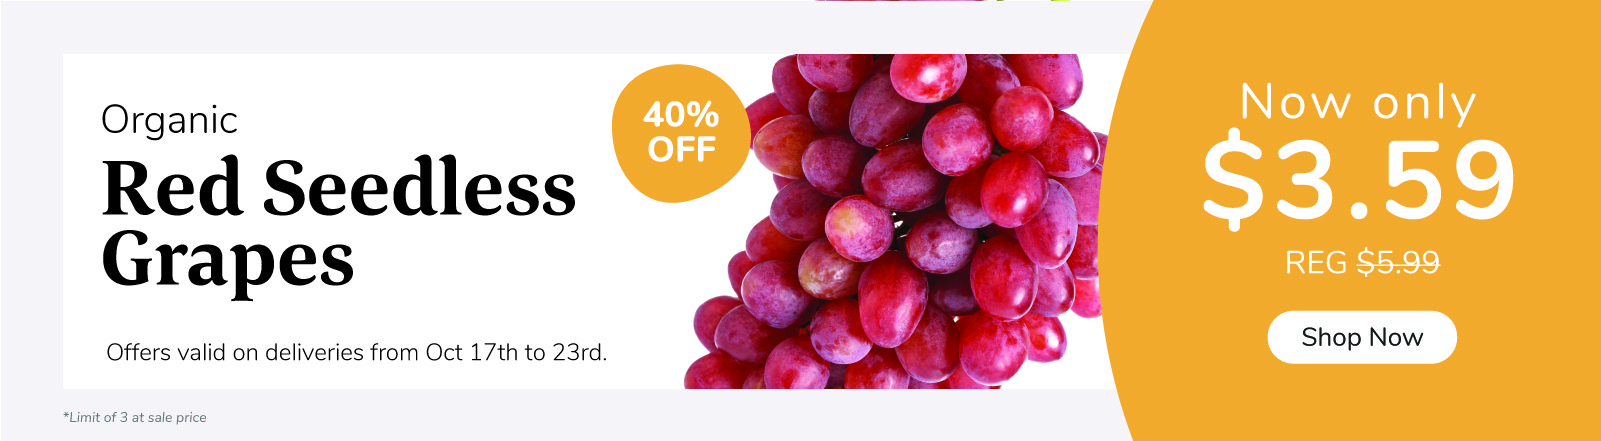 Organic Red Seedless Grapes on sale